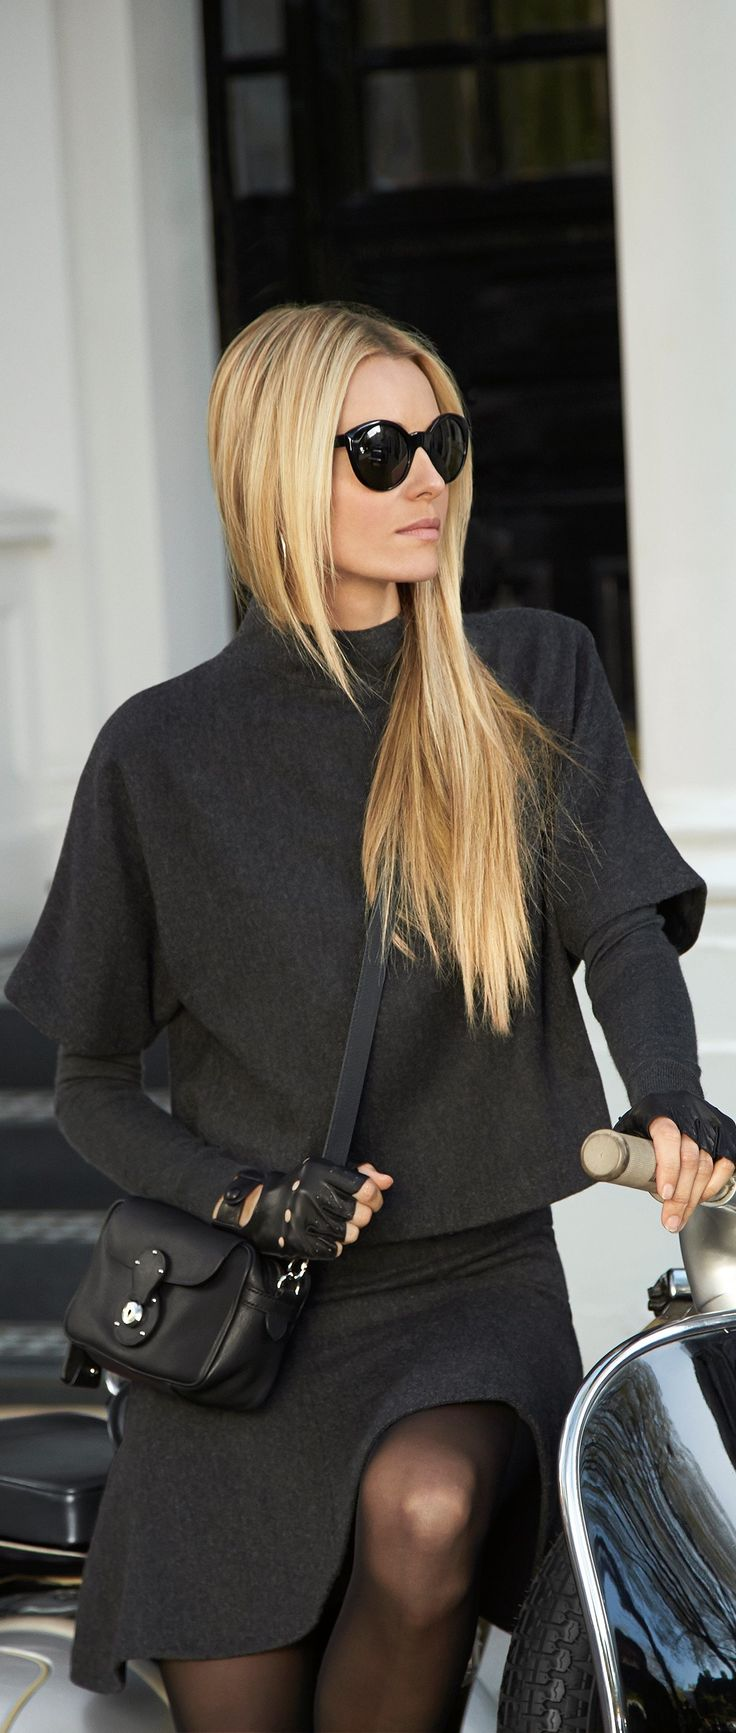 The Ralph Lauren Black Label Wool Hammond Top: this chic herringbone top is designed with a stand collar and oversized short dolman sleeves.